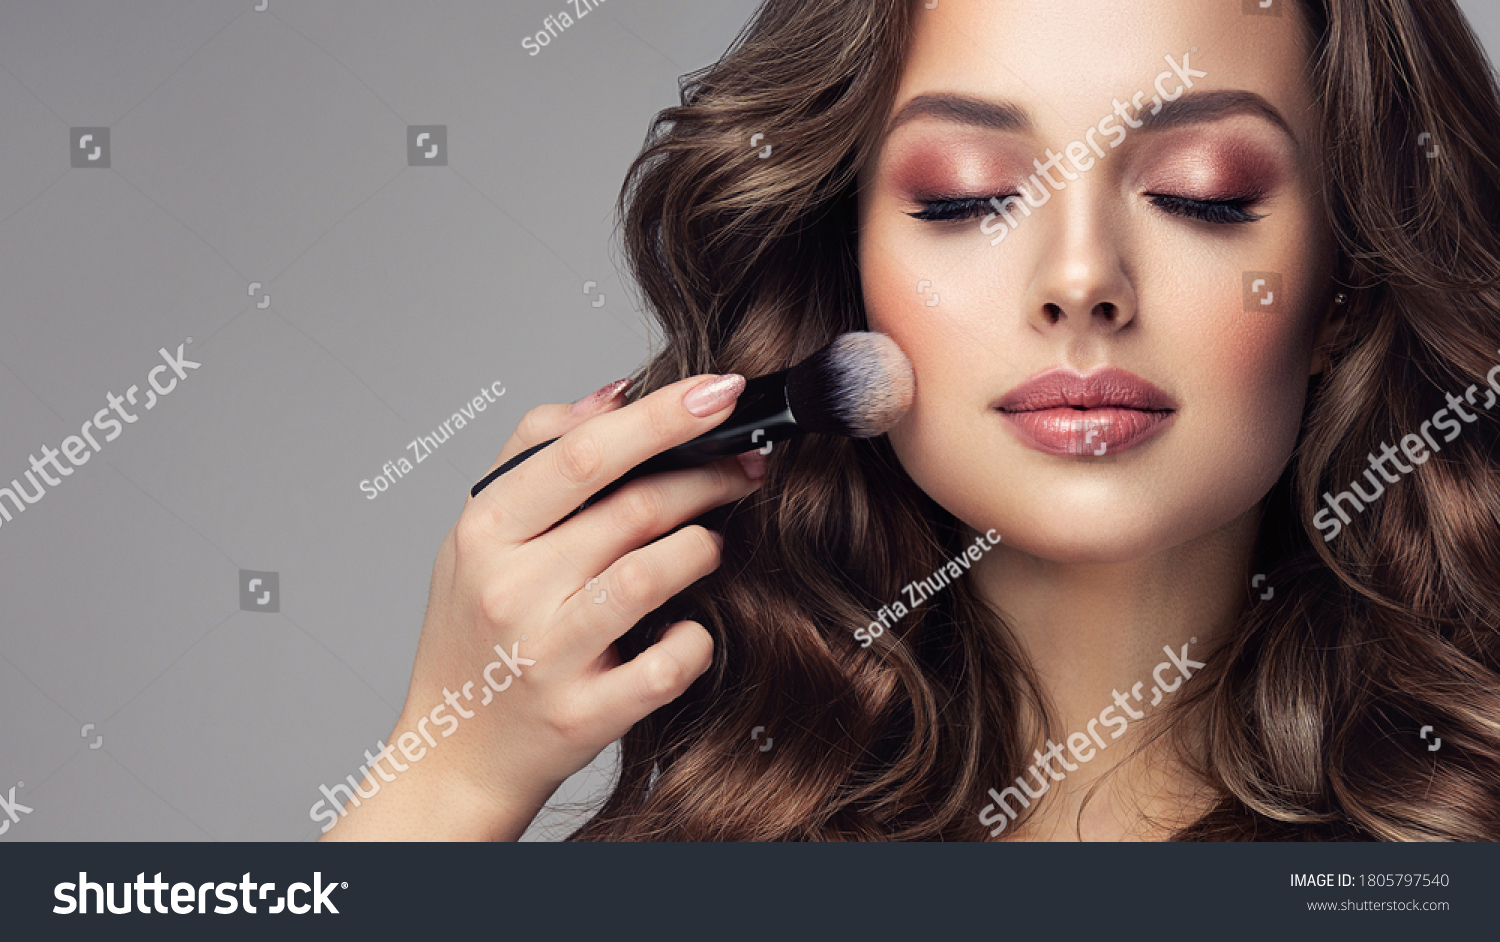 Makeup artist applies   applies powder and blush  . Beautiful woman face. Hand of make-up master puts blush on cheeks  beauty  model girl . Make up in process #1805797540